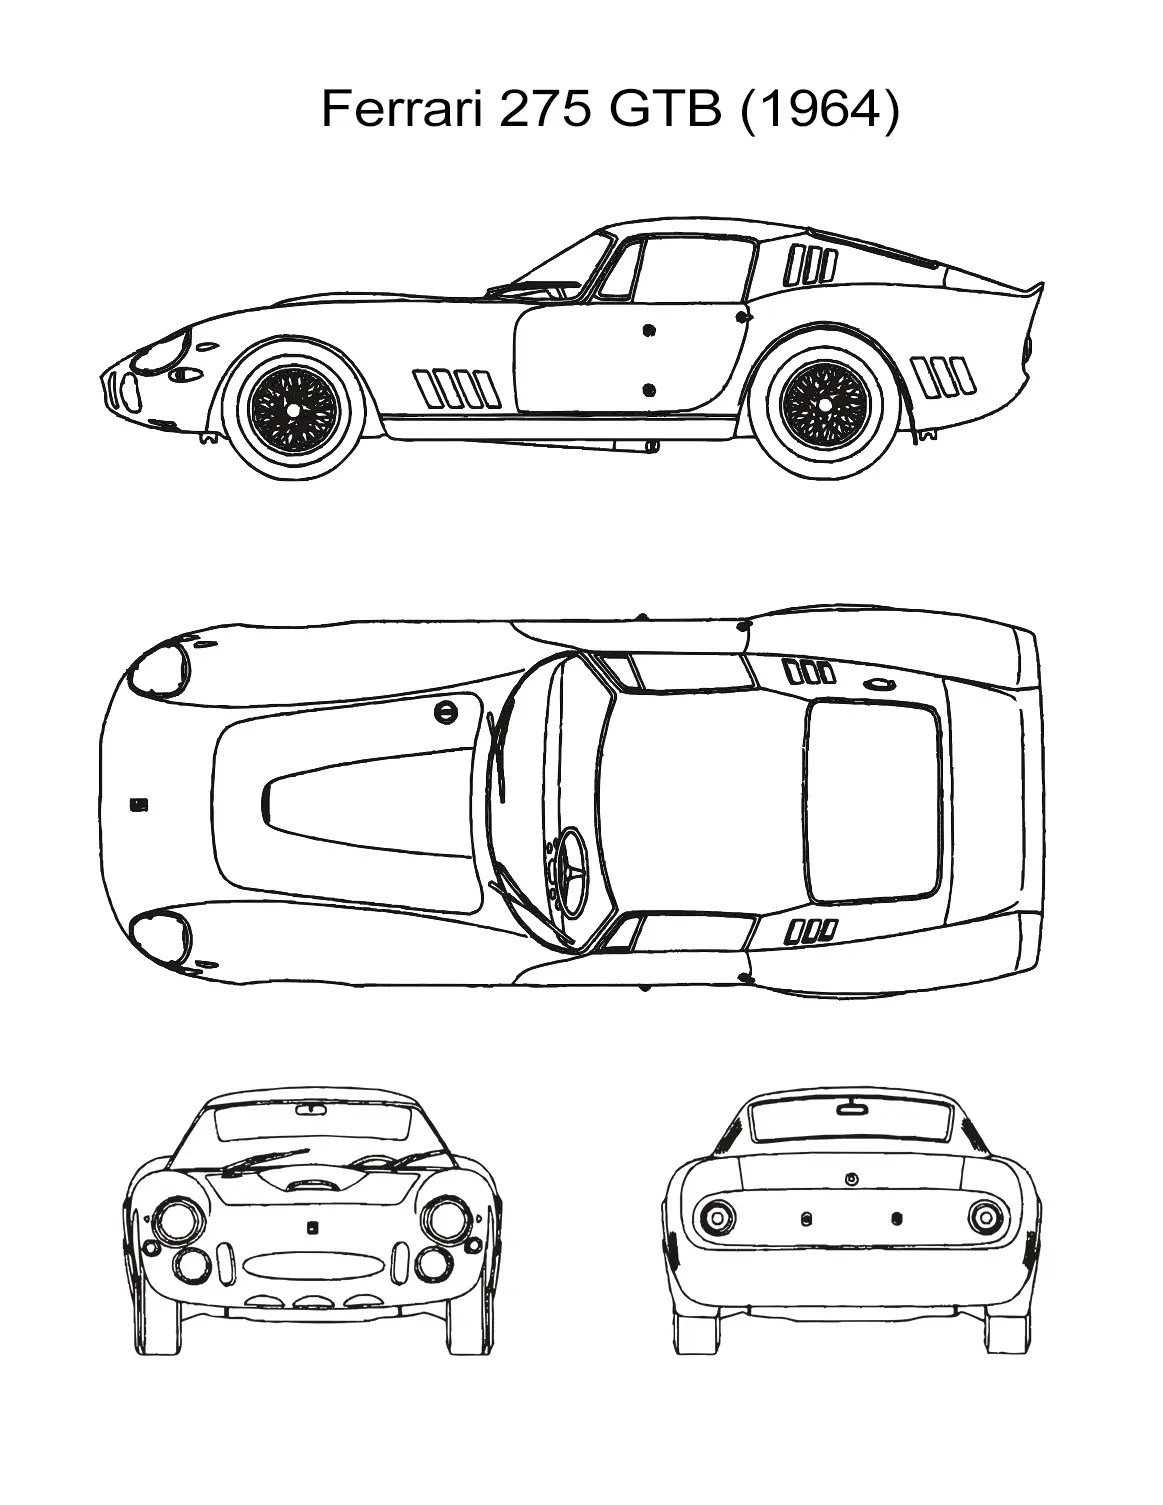 10 Car Coloring Sheets: Sports, Muscle, Racing Cars and